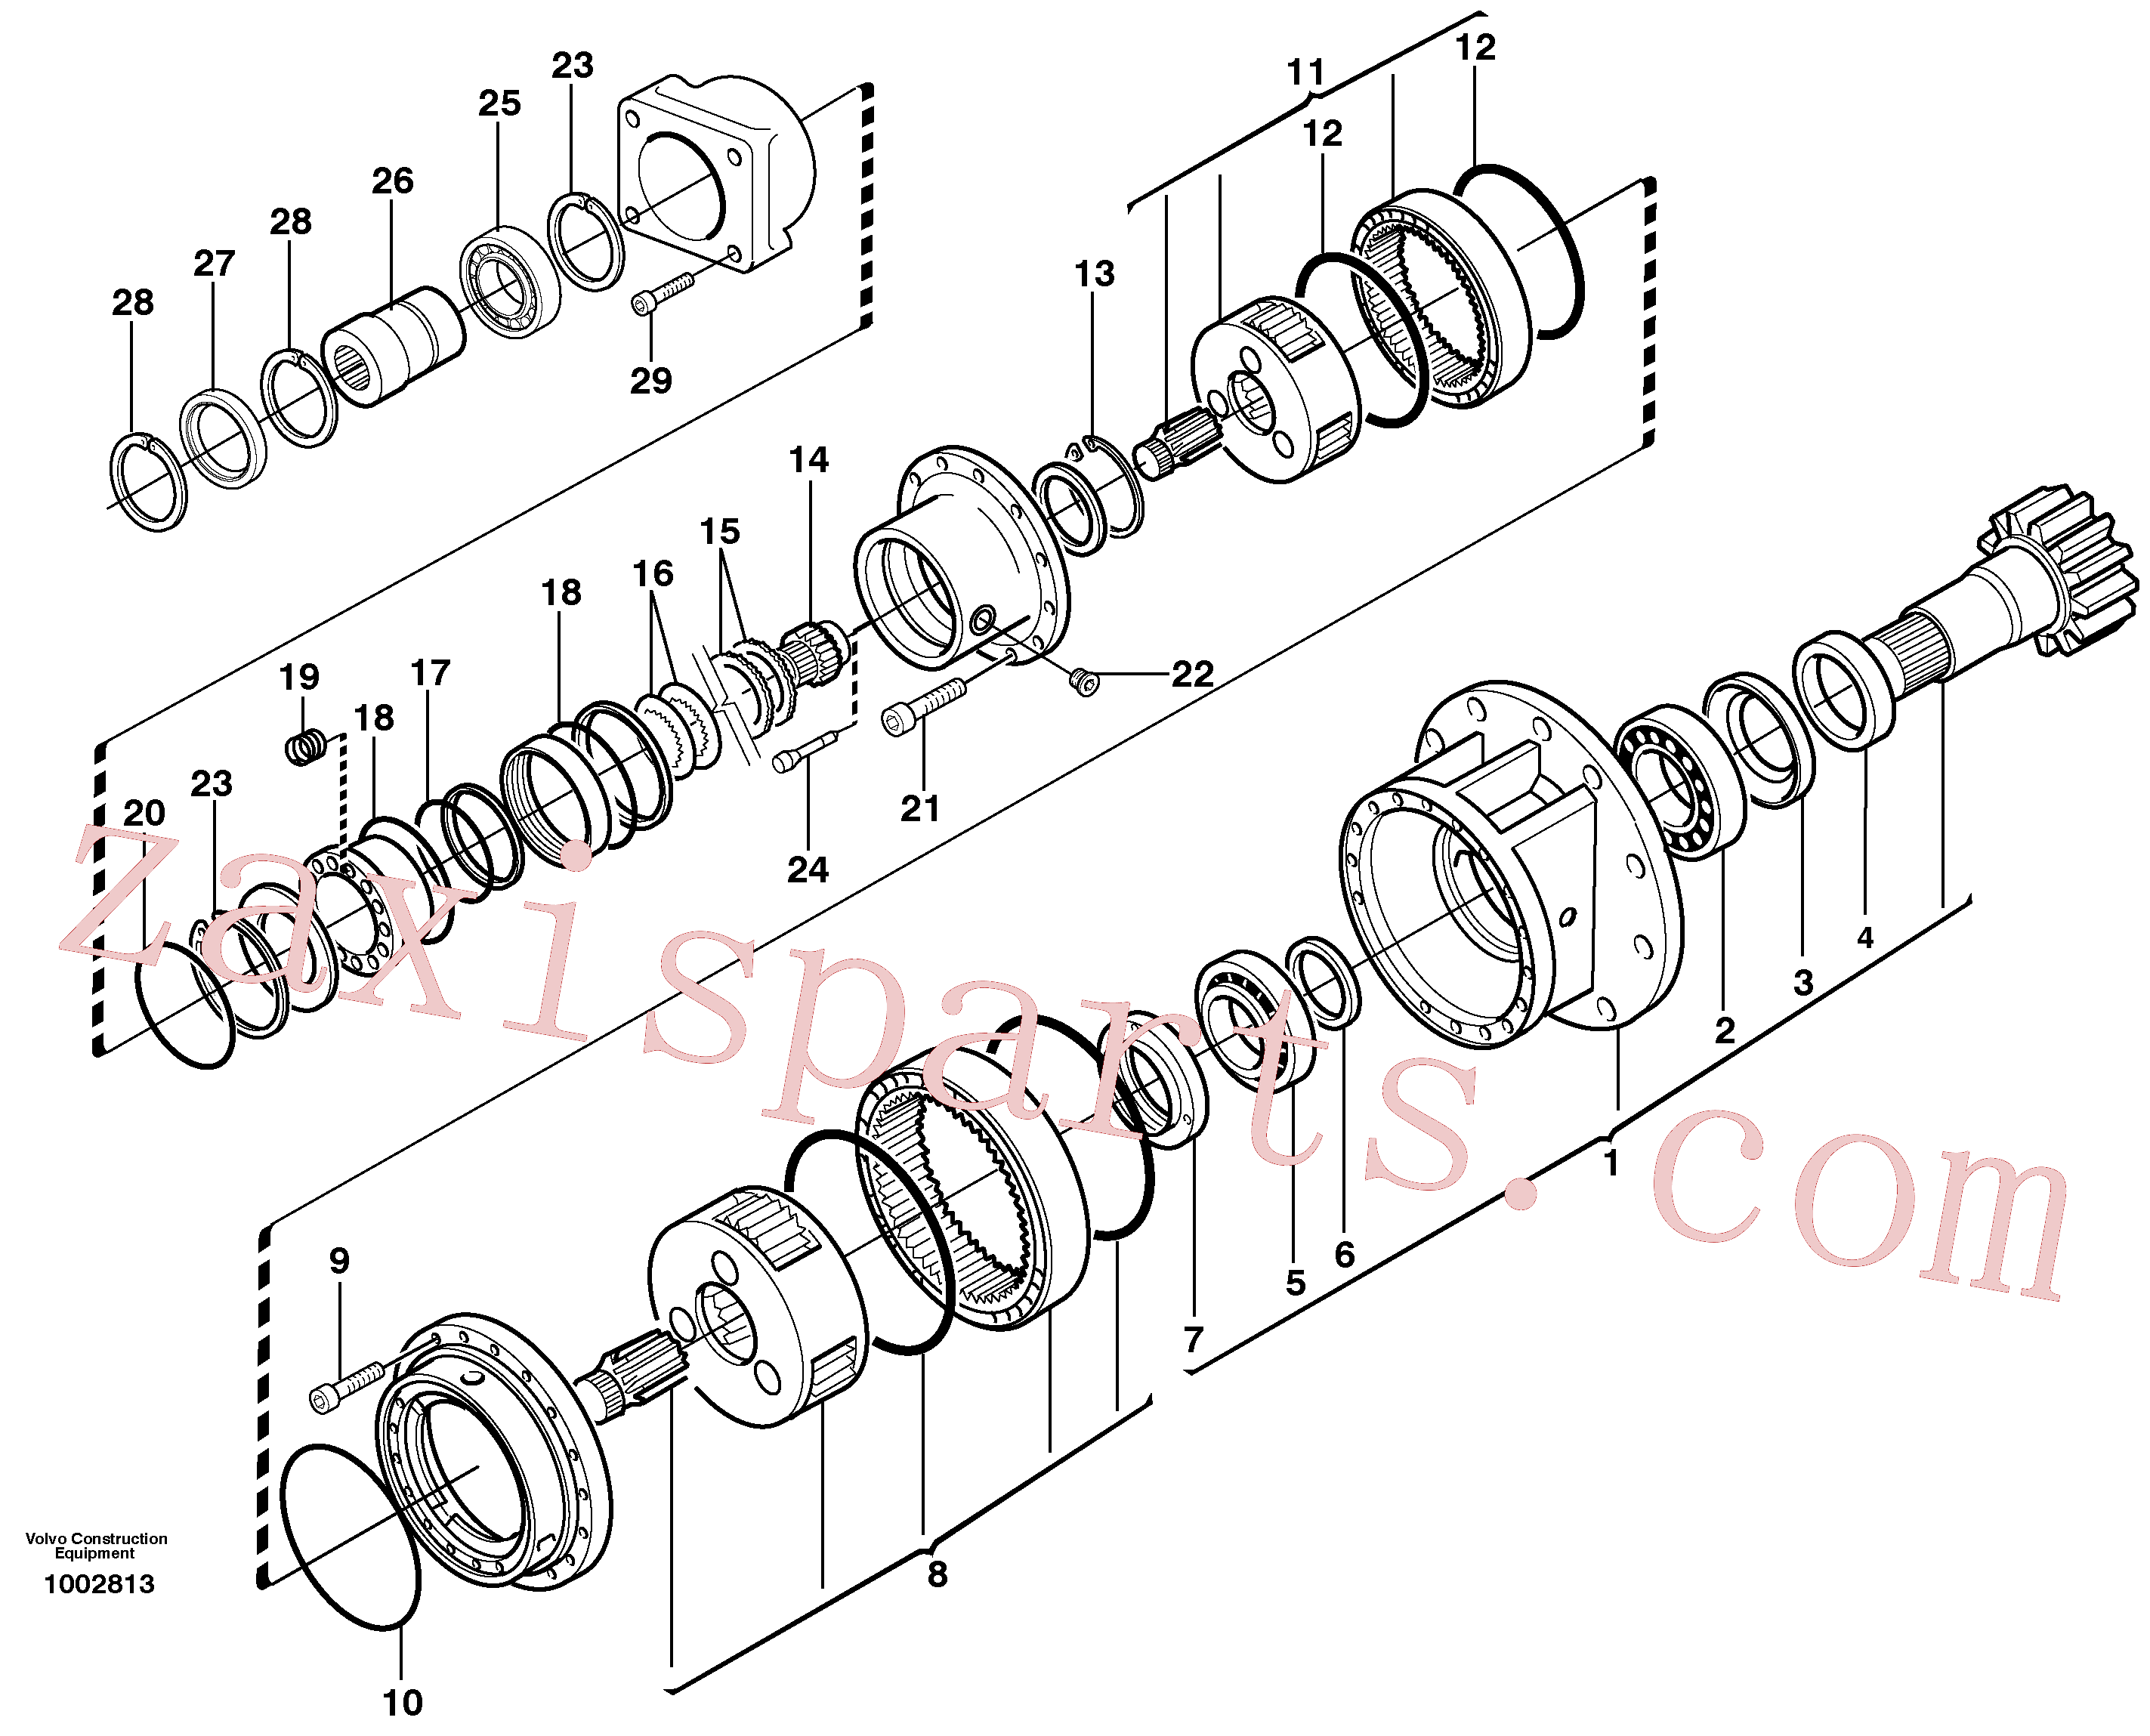 RM20349643 for Volvo Rebuild kit, Swing gearbox(1002813 assembly)